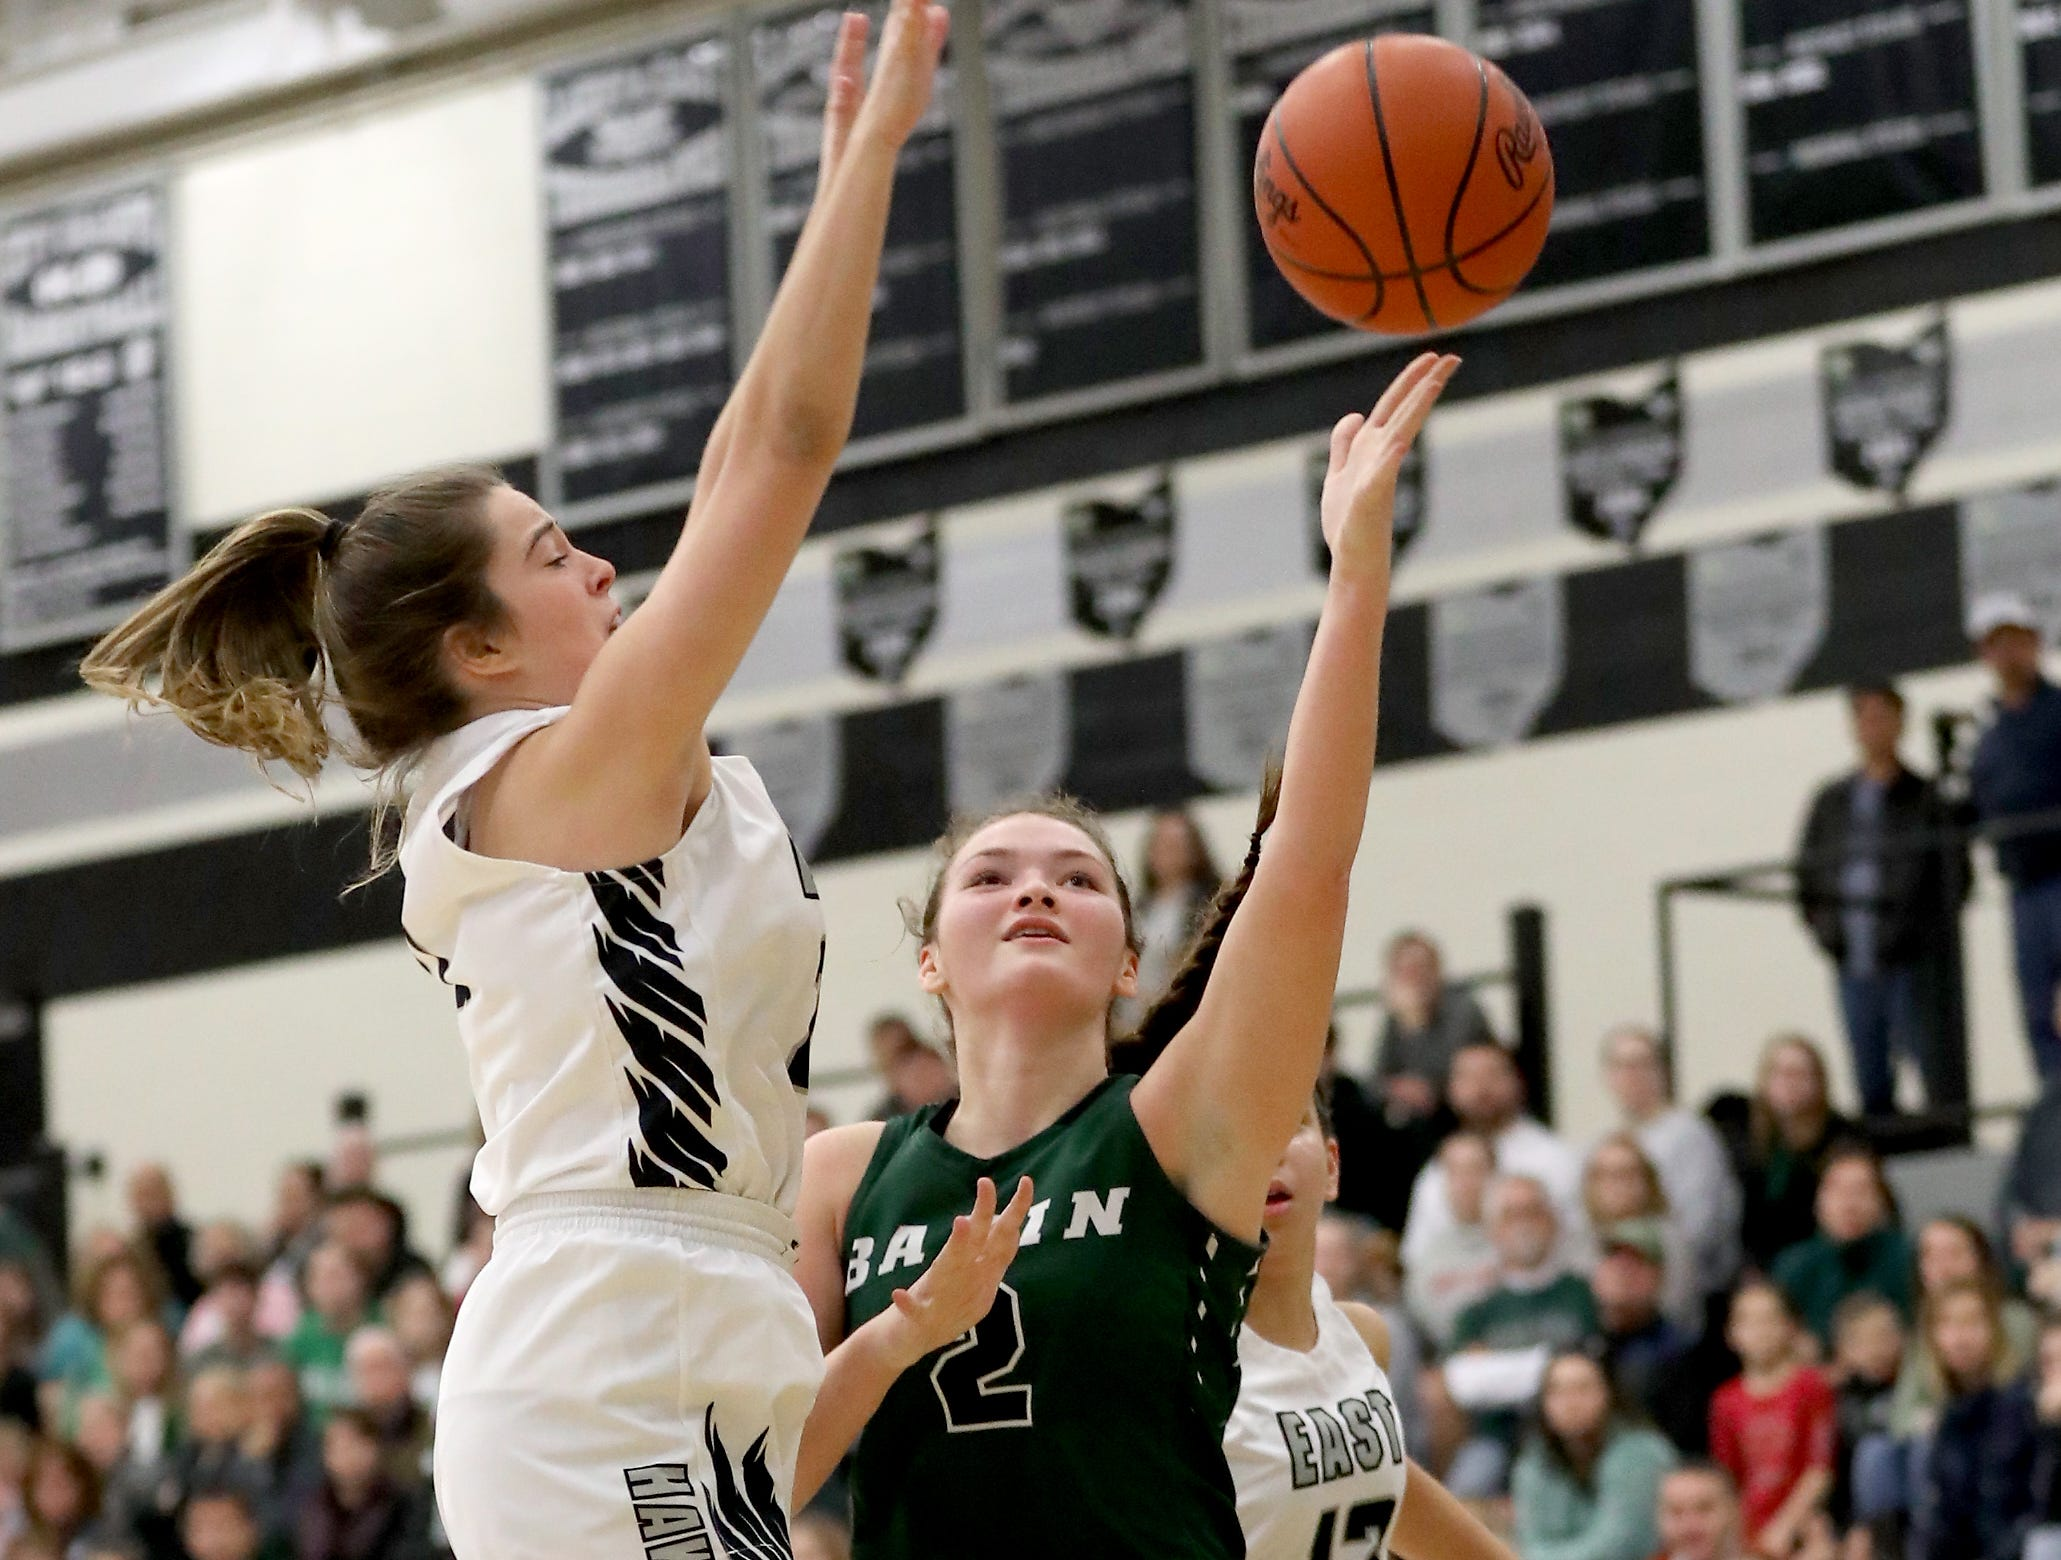 Badin guard Shelby Nusbaum (12) drives to the basket during the Rams' game against Lakota East, Thursday, Dec. 20, 2018.